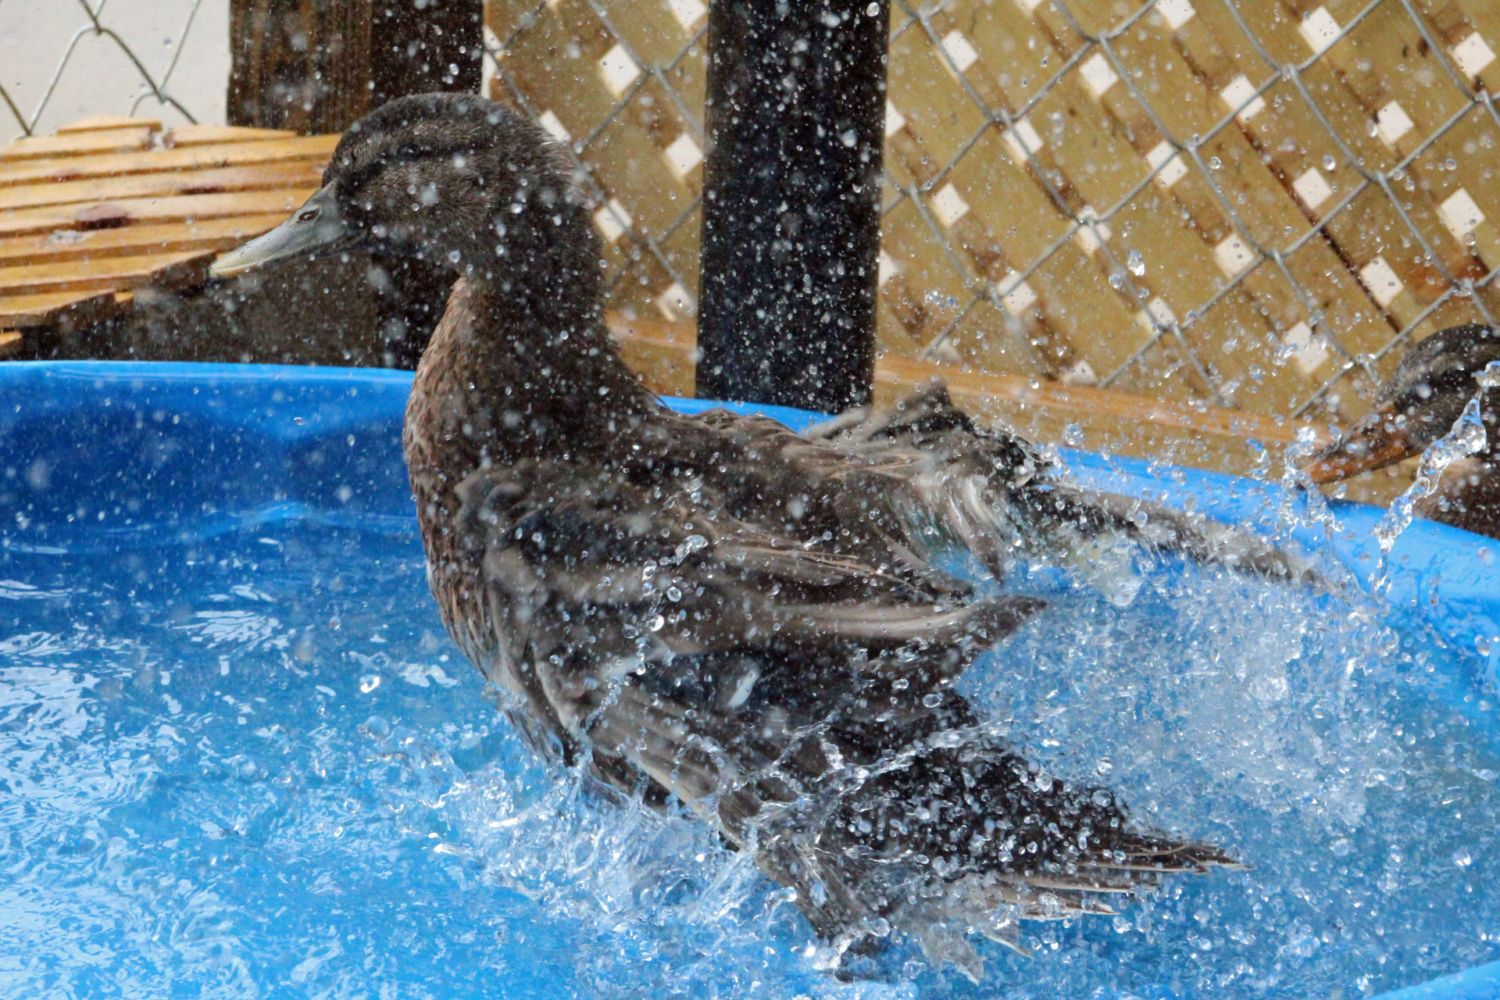 mallard pool party backyard chickens